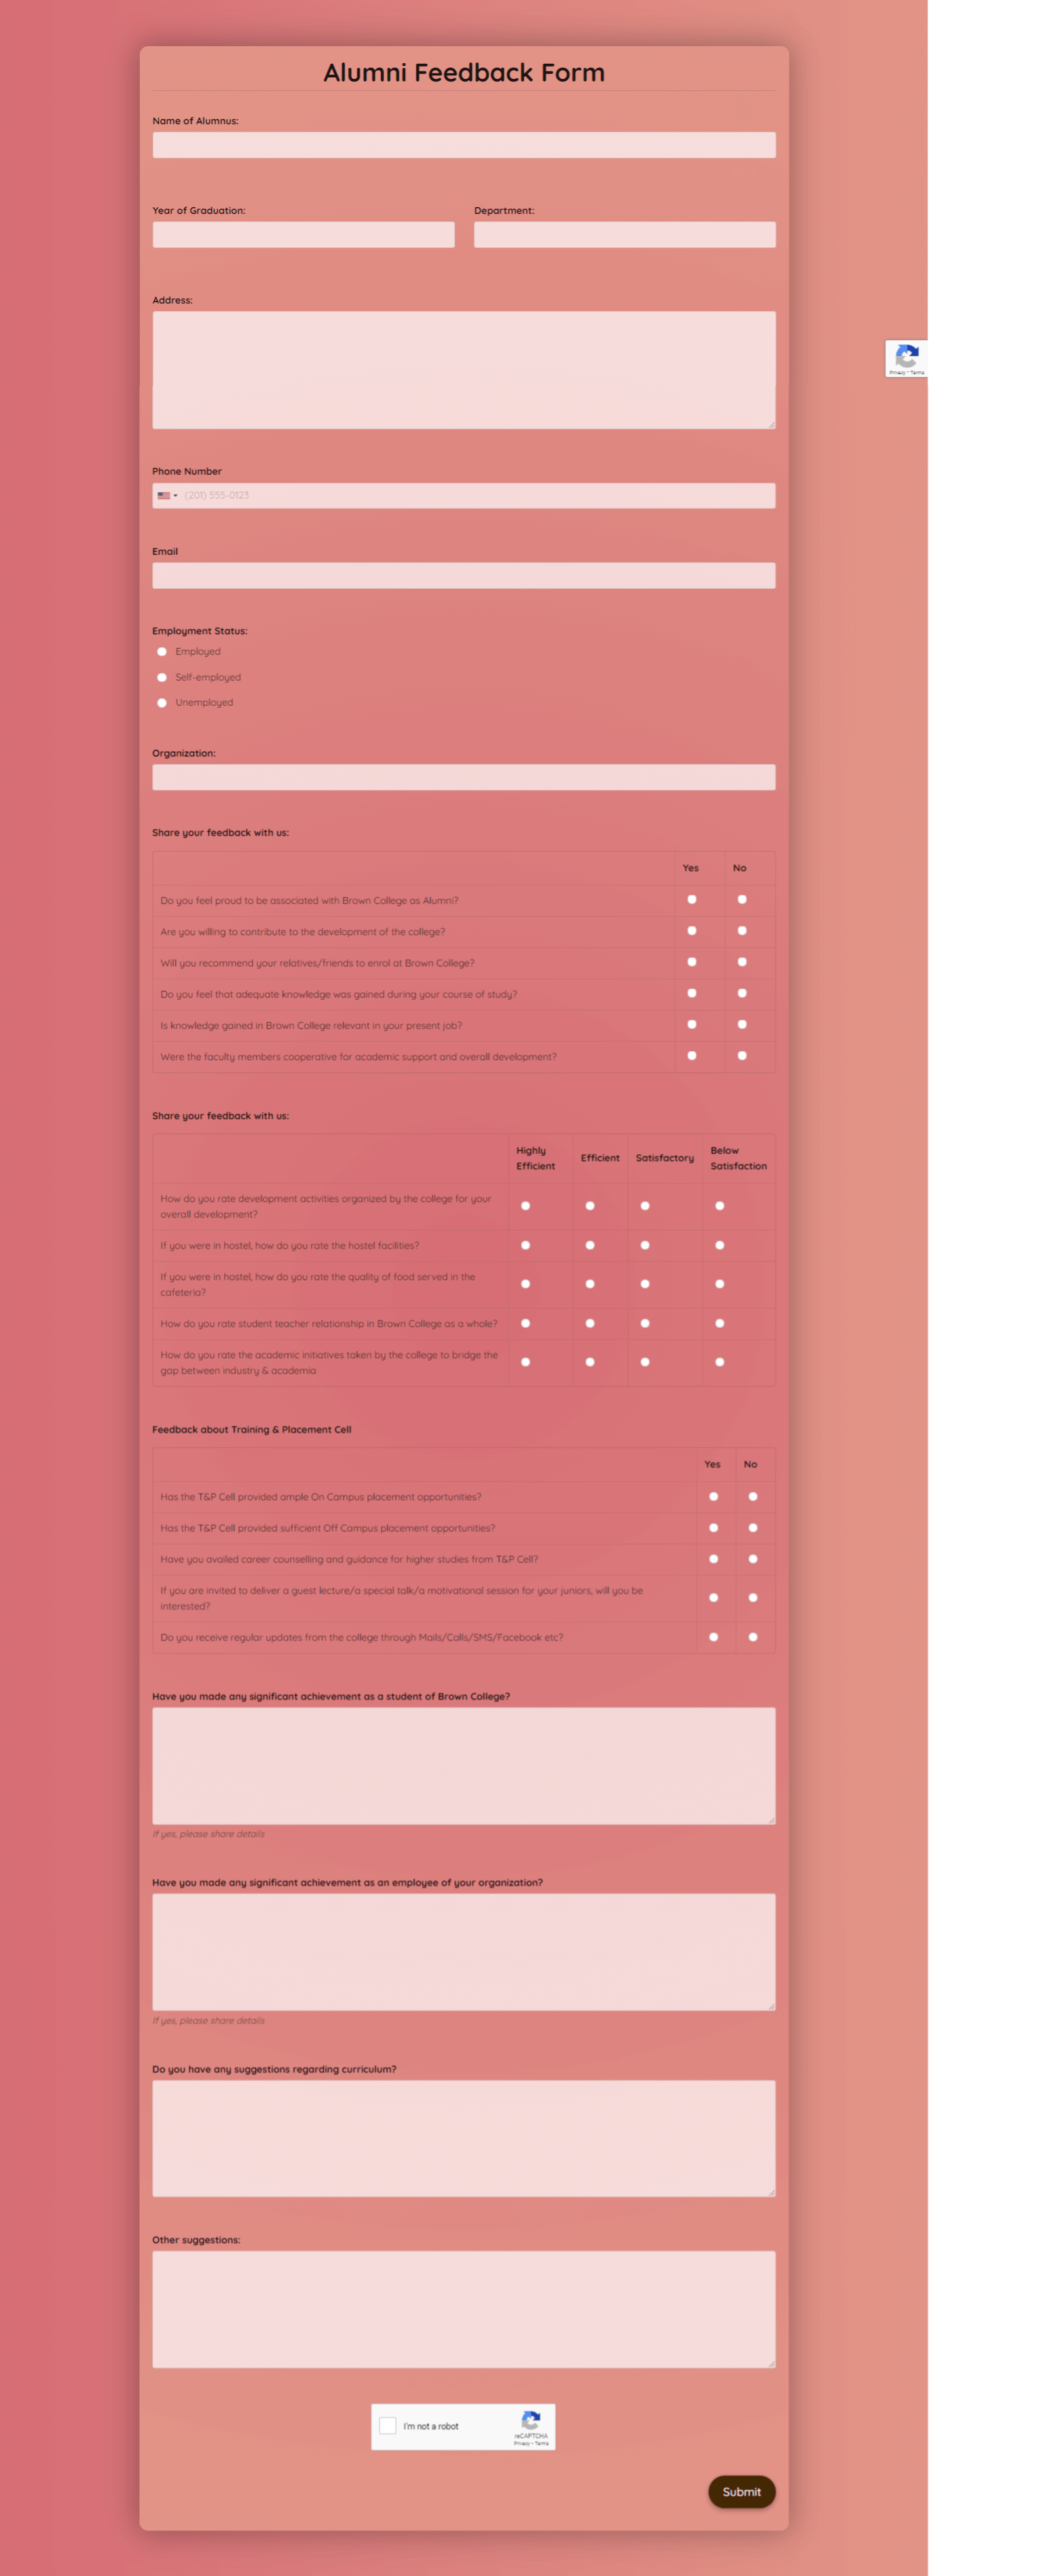 Alumni Feedback Form Template template